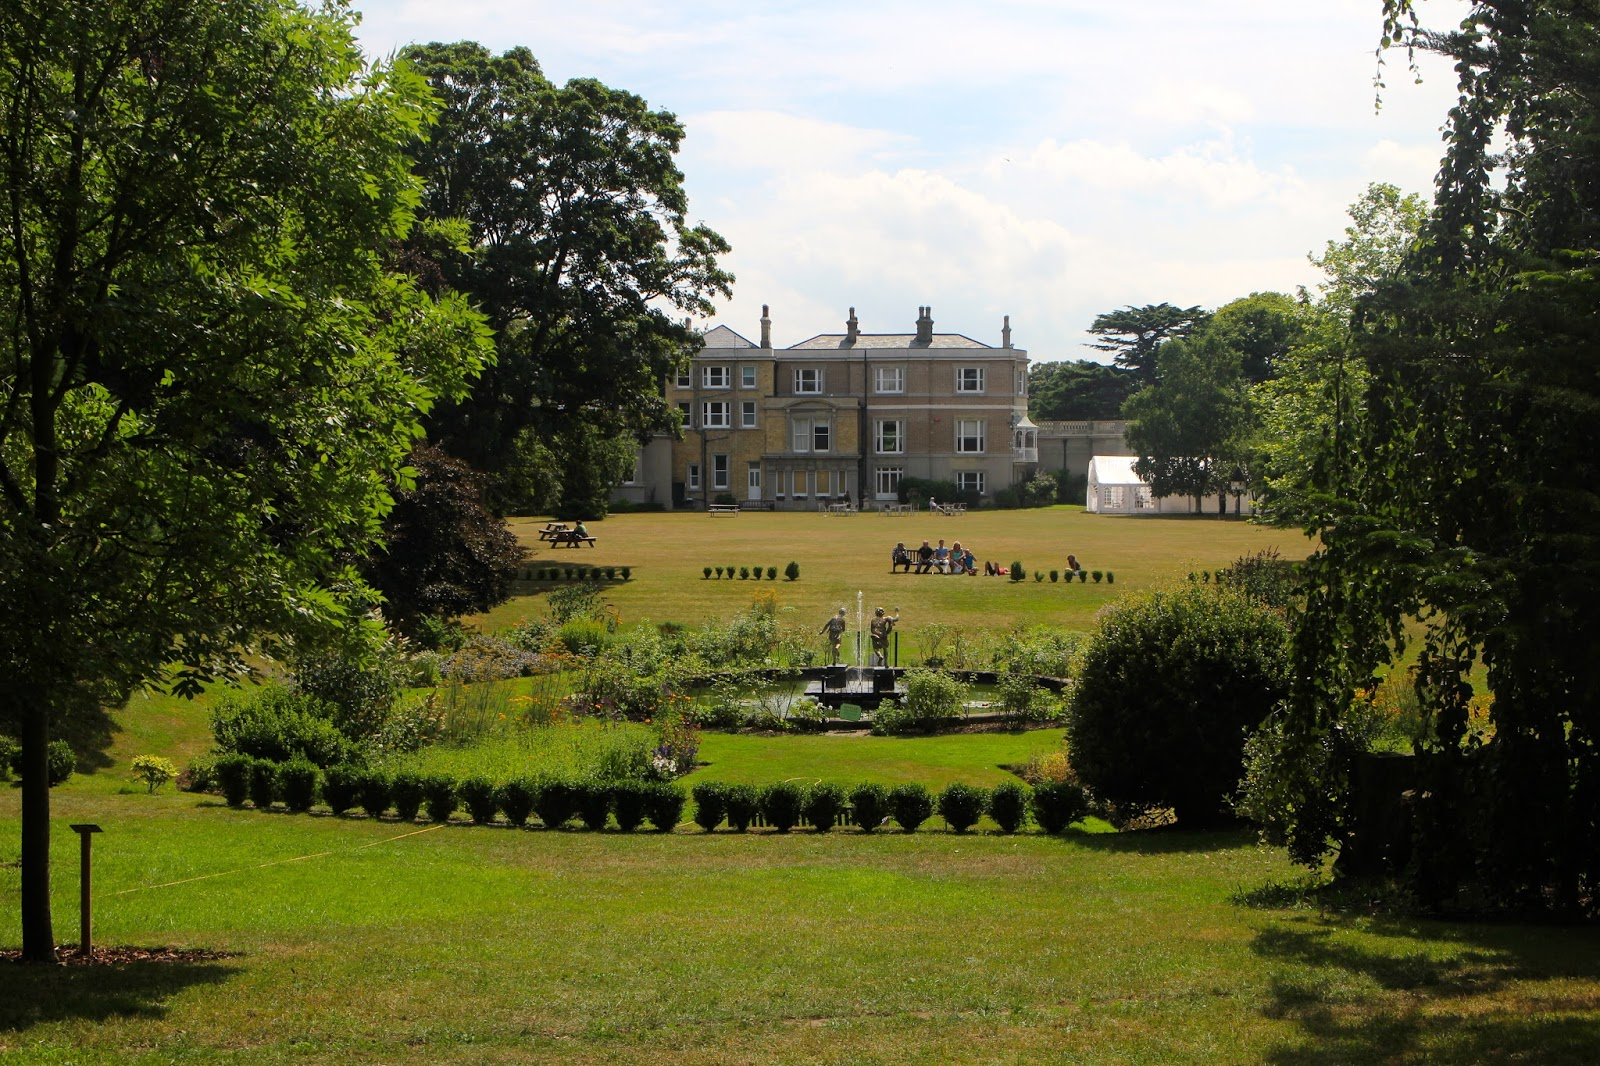 miscriant quex park house and gardens